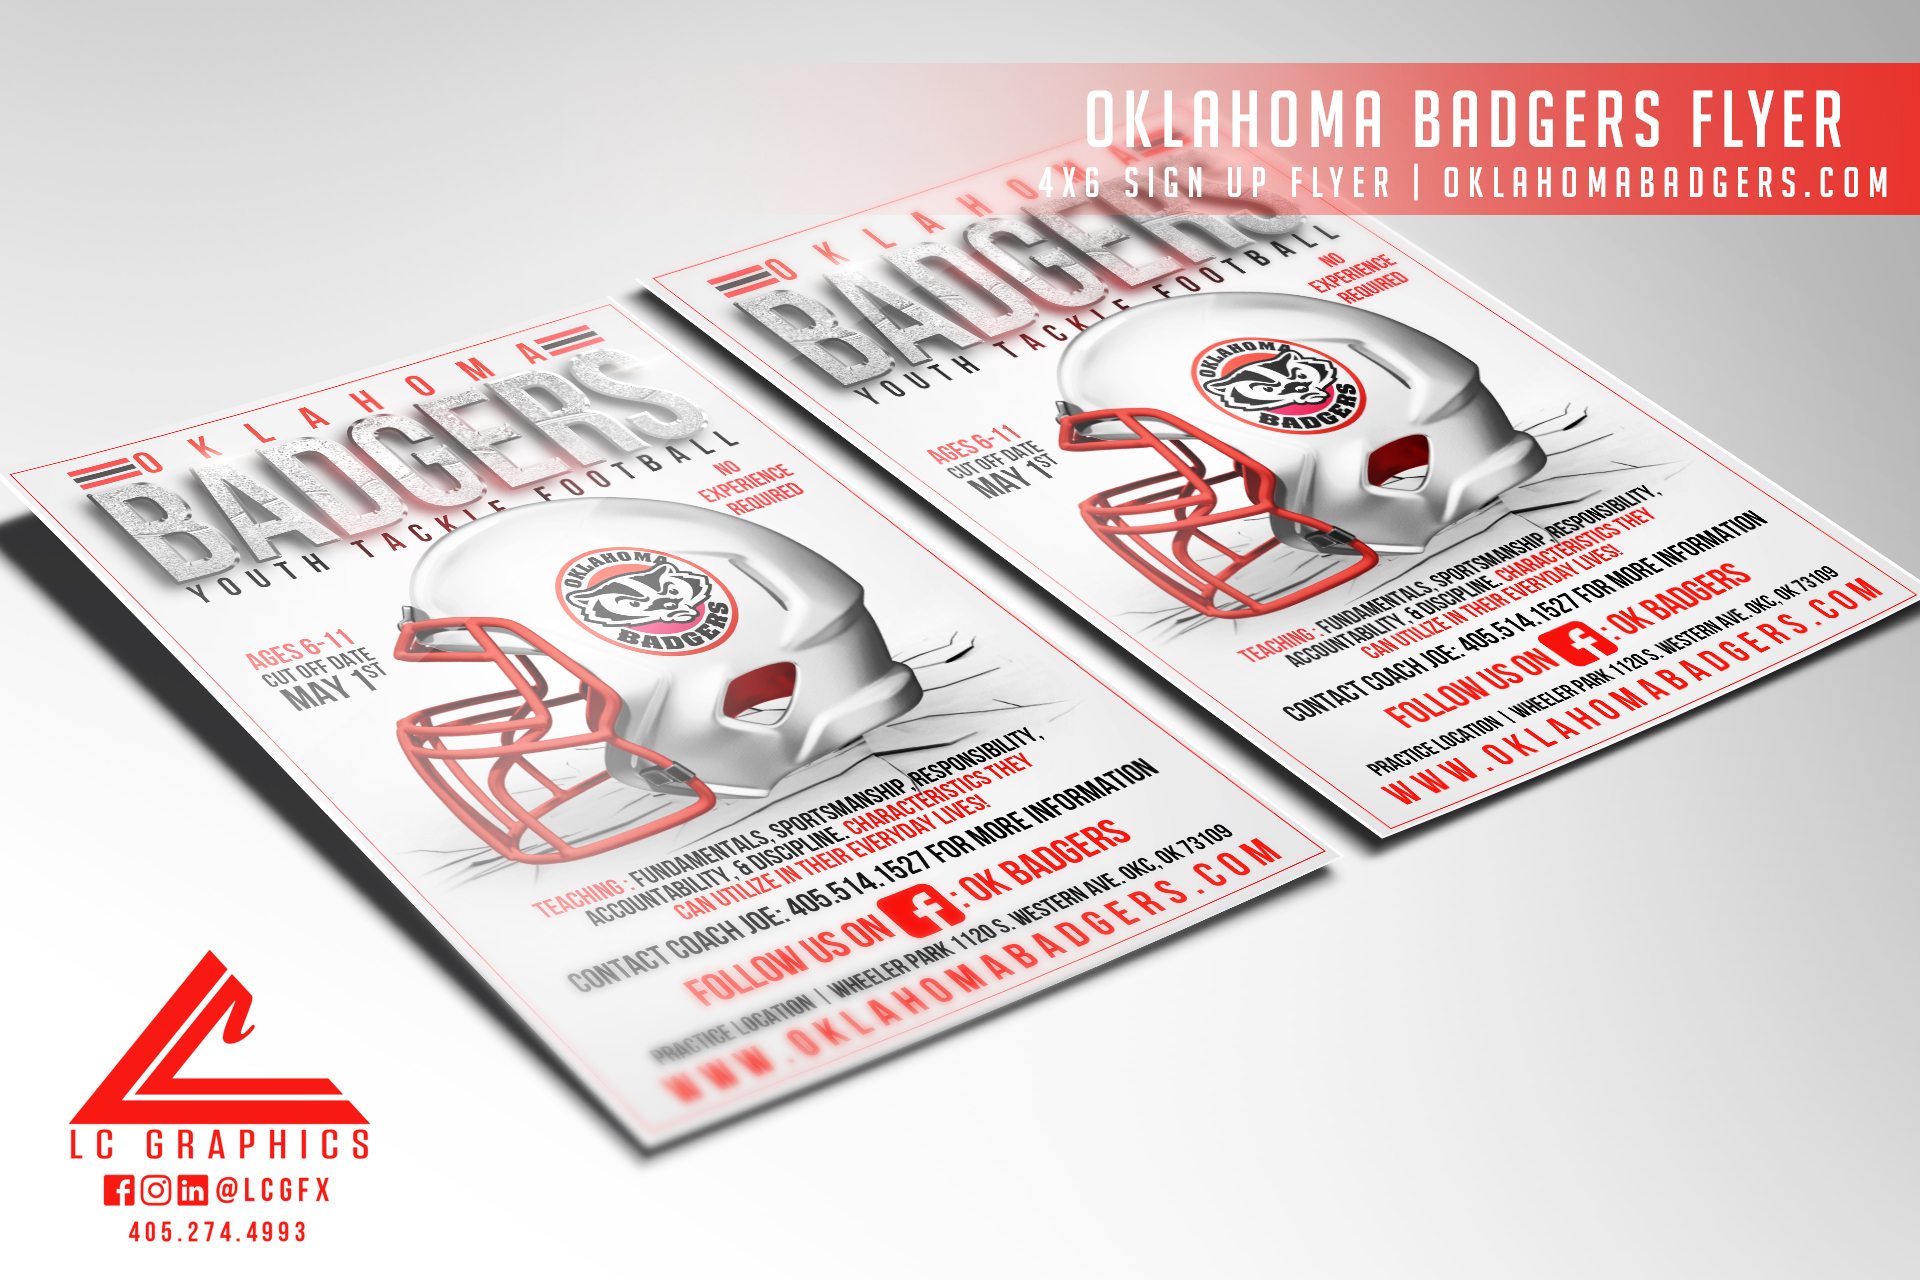 Oklahoma Badgers 4x6 Flyer Mockup